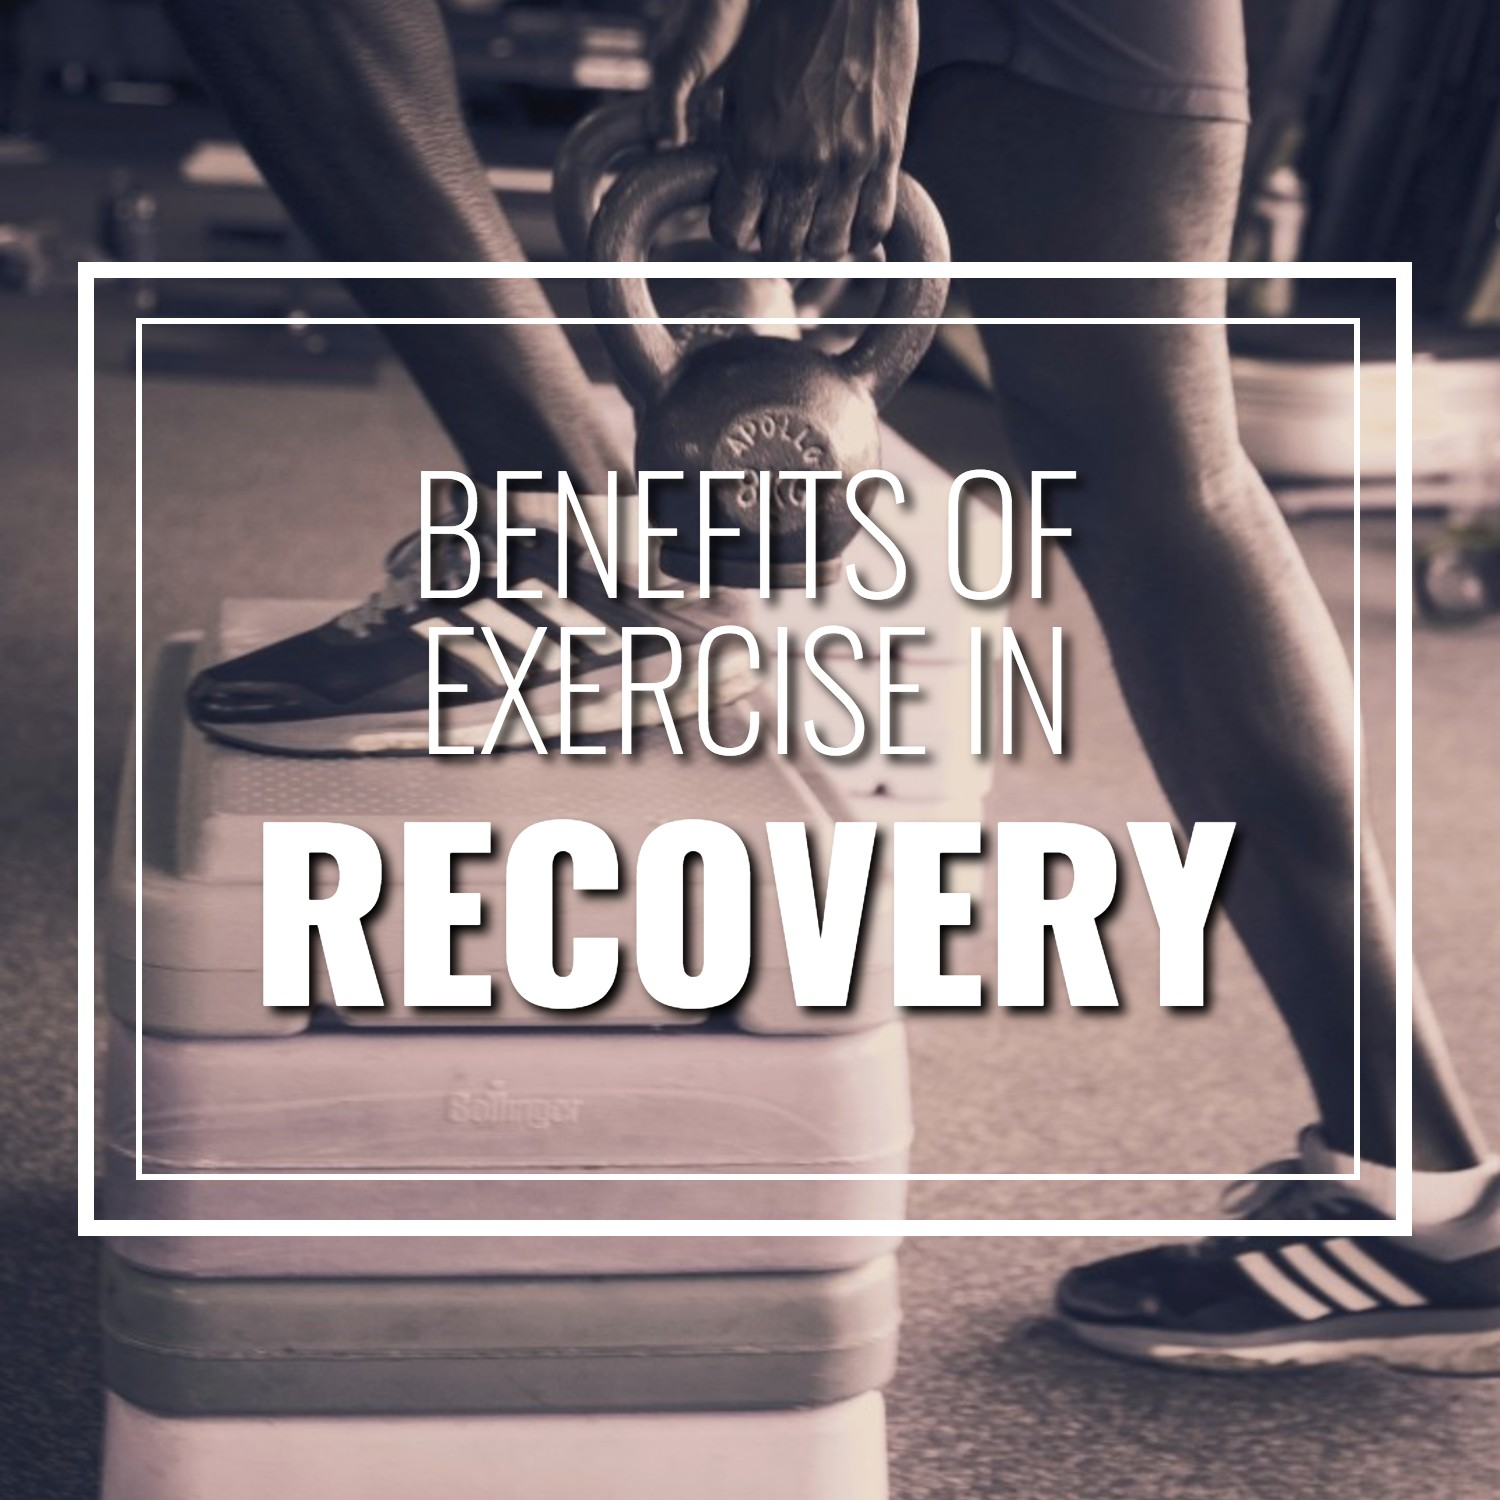 person using kettle bells to exercise - Benefits of exercise in recovery